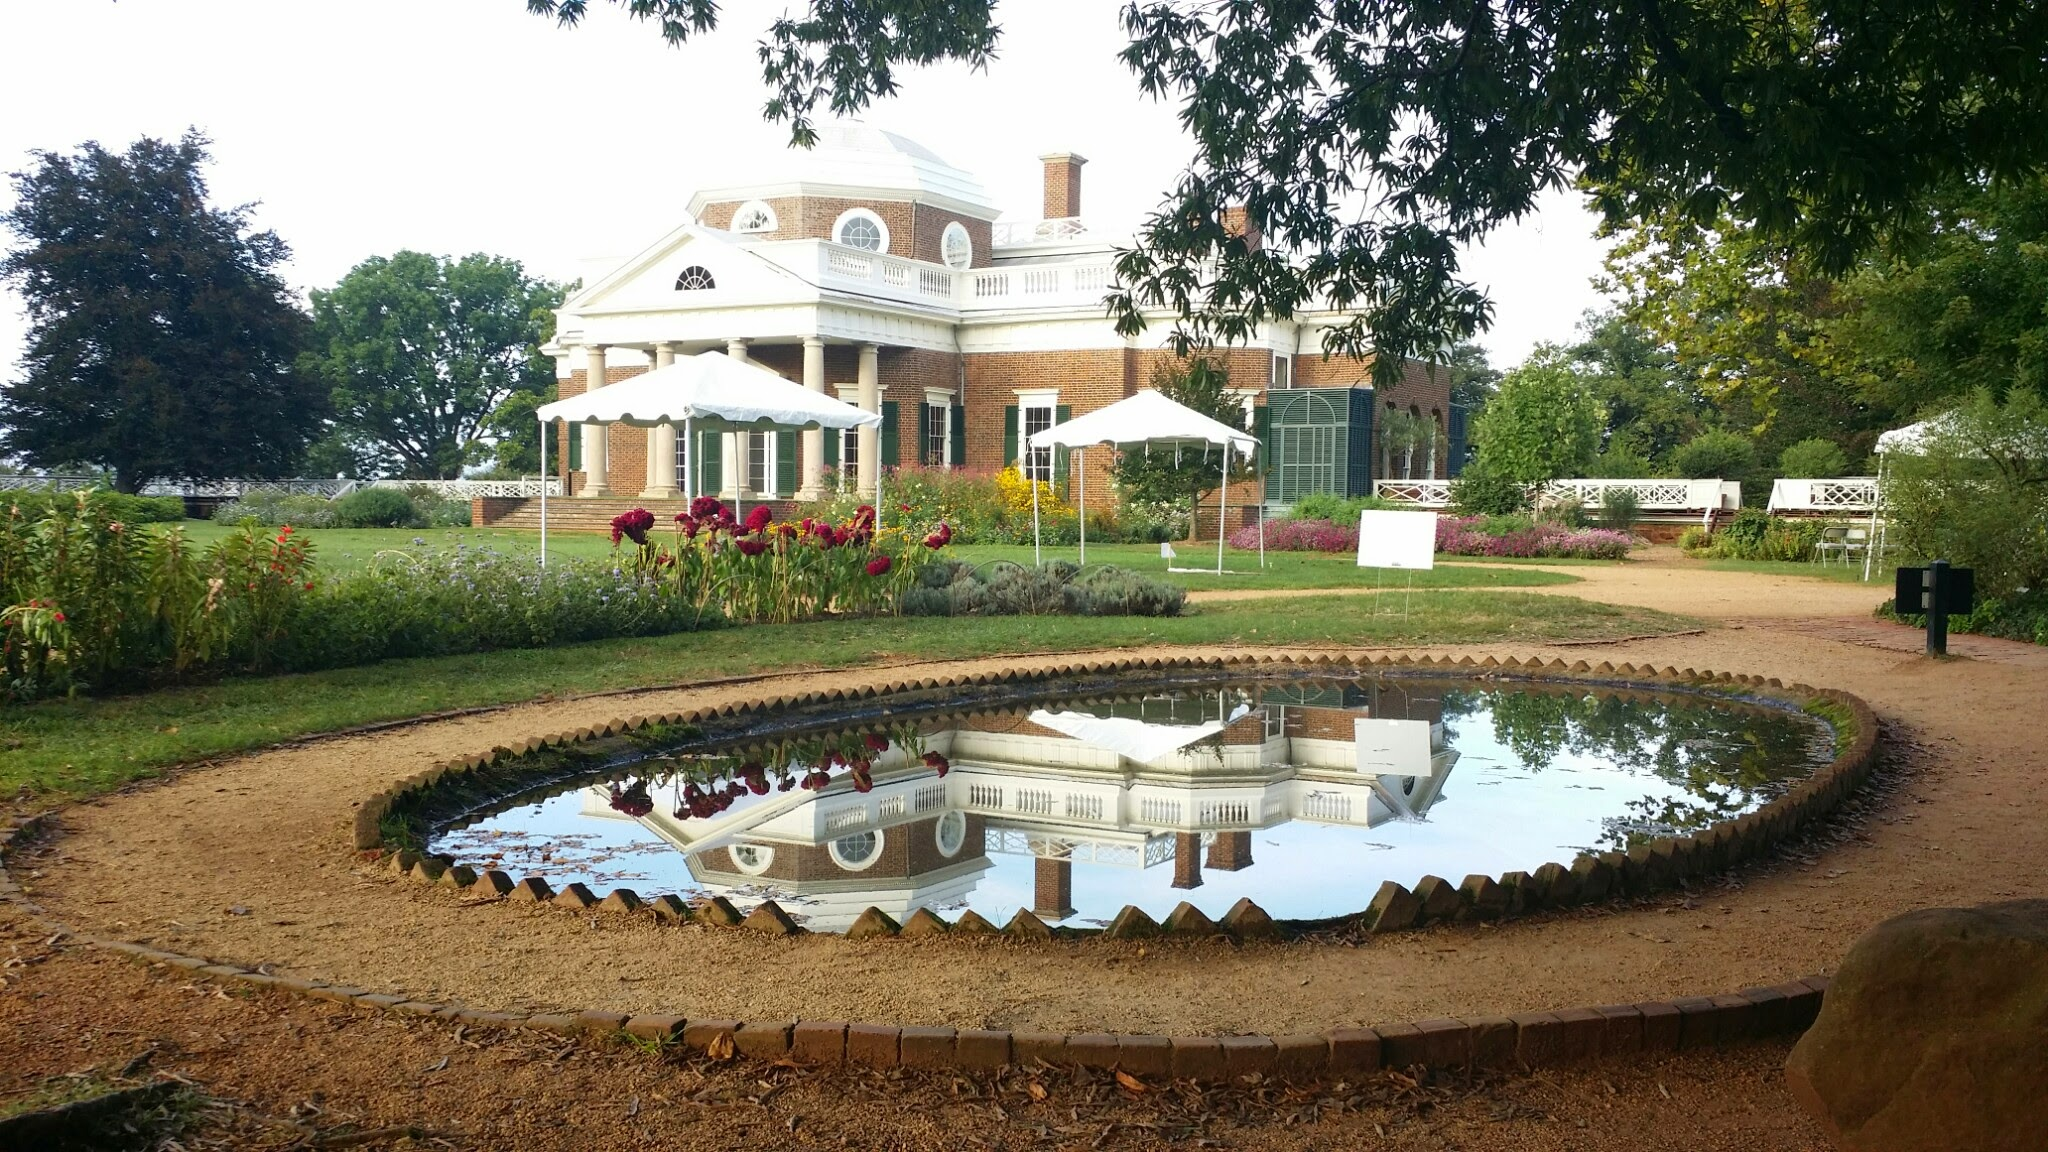 American Heritage At The Monticello #ChocolateHistory